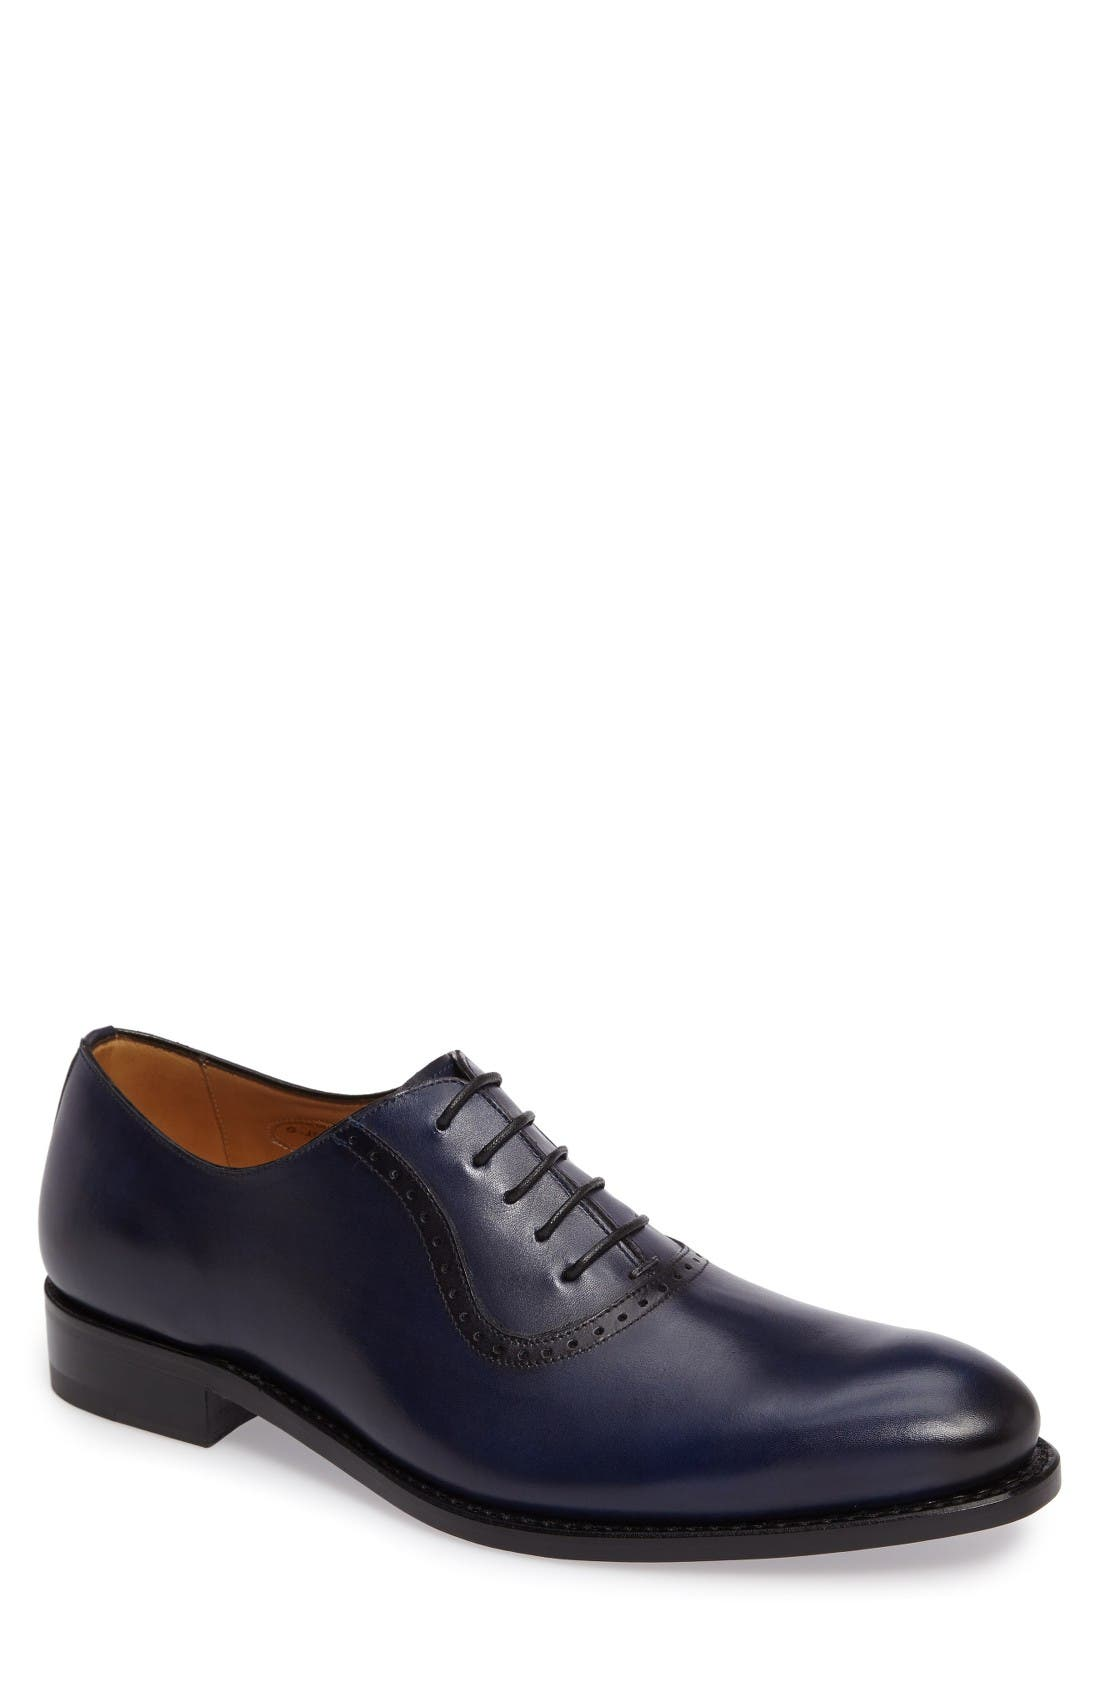 IMPRONTA by Mezlan G105 Plain Toe Oxford